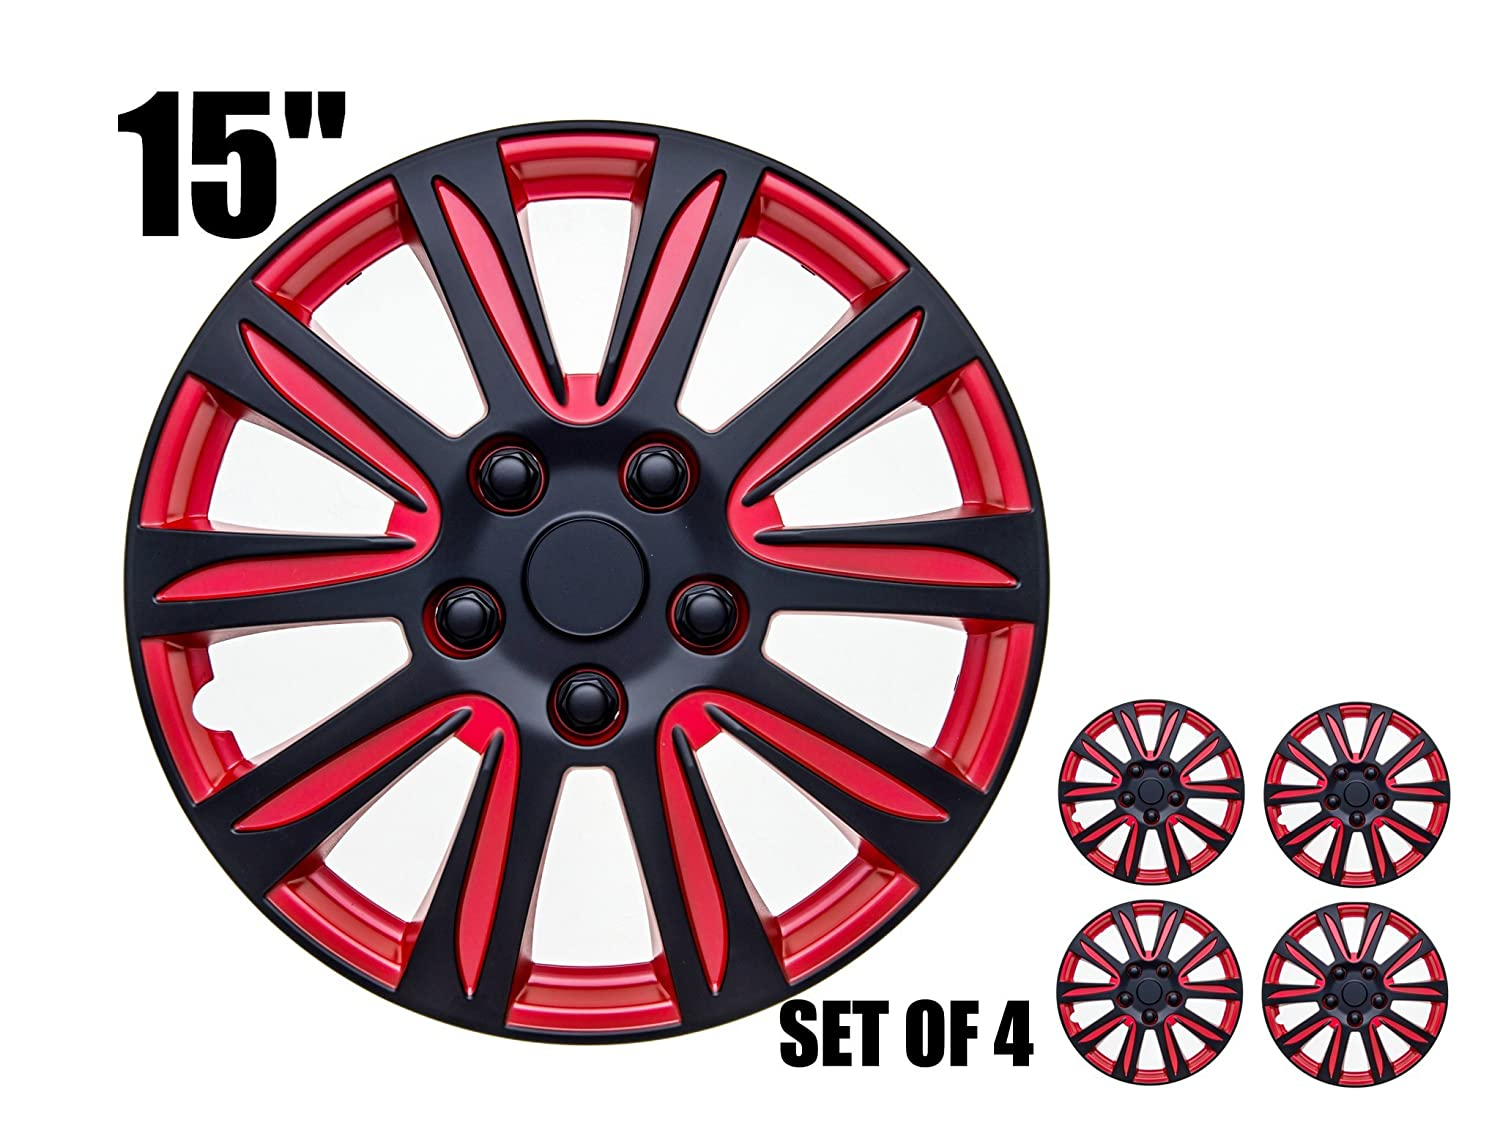 Marina Bay,16 Universal Fitment RED and Black Marina Bay 16 Universal Fitment Sumex 4350289670 Easy to install 16 inch Hubcaps Set of 4